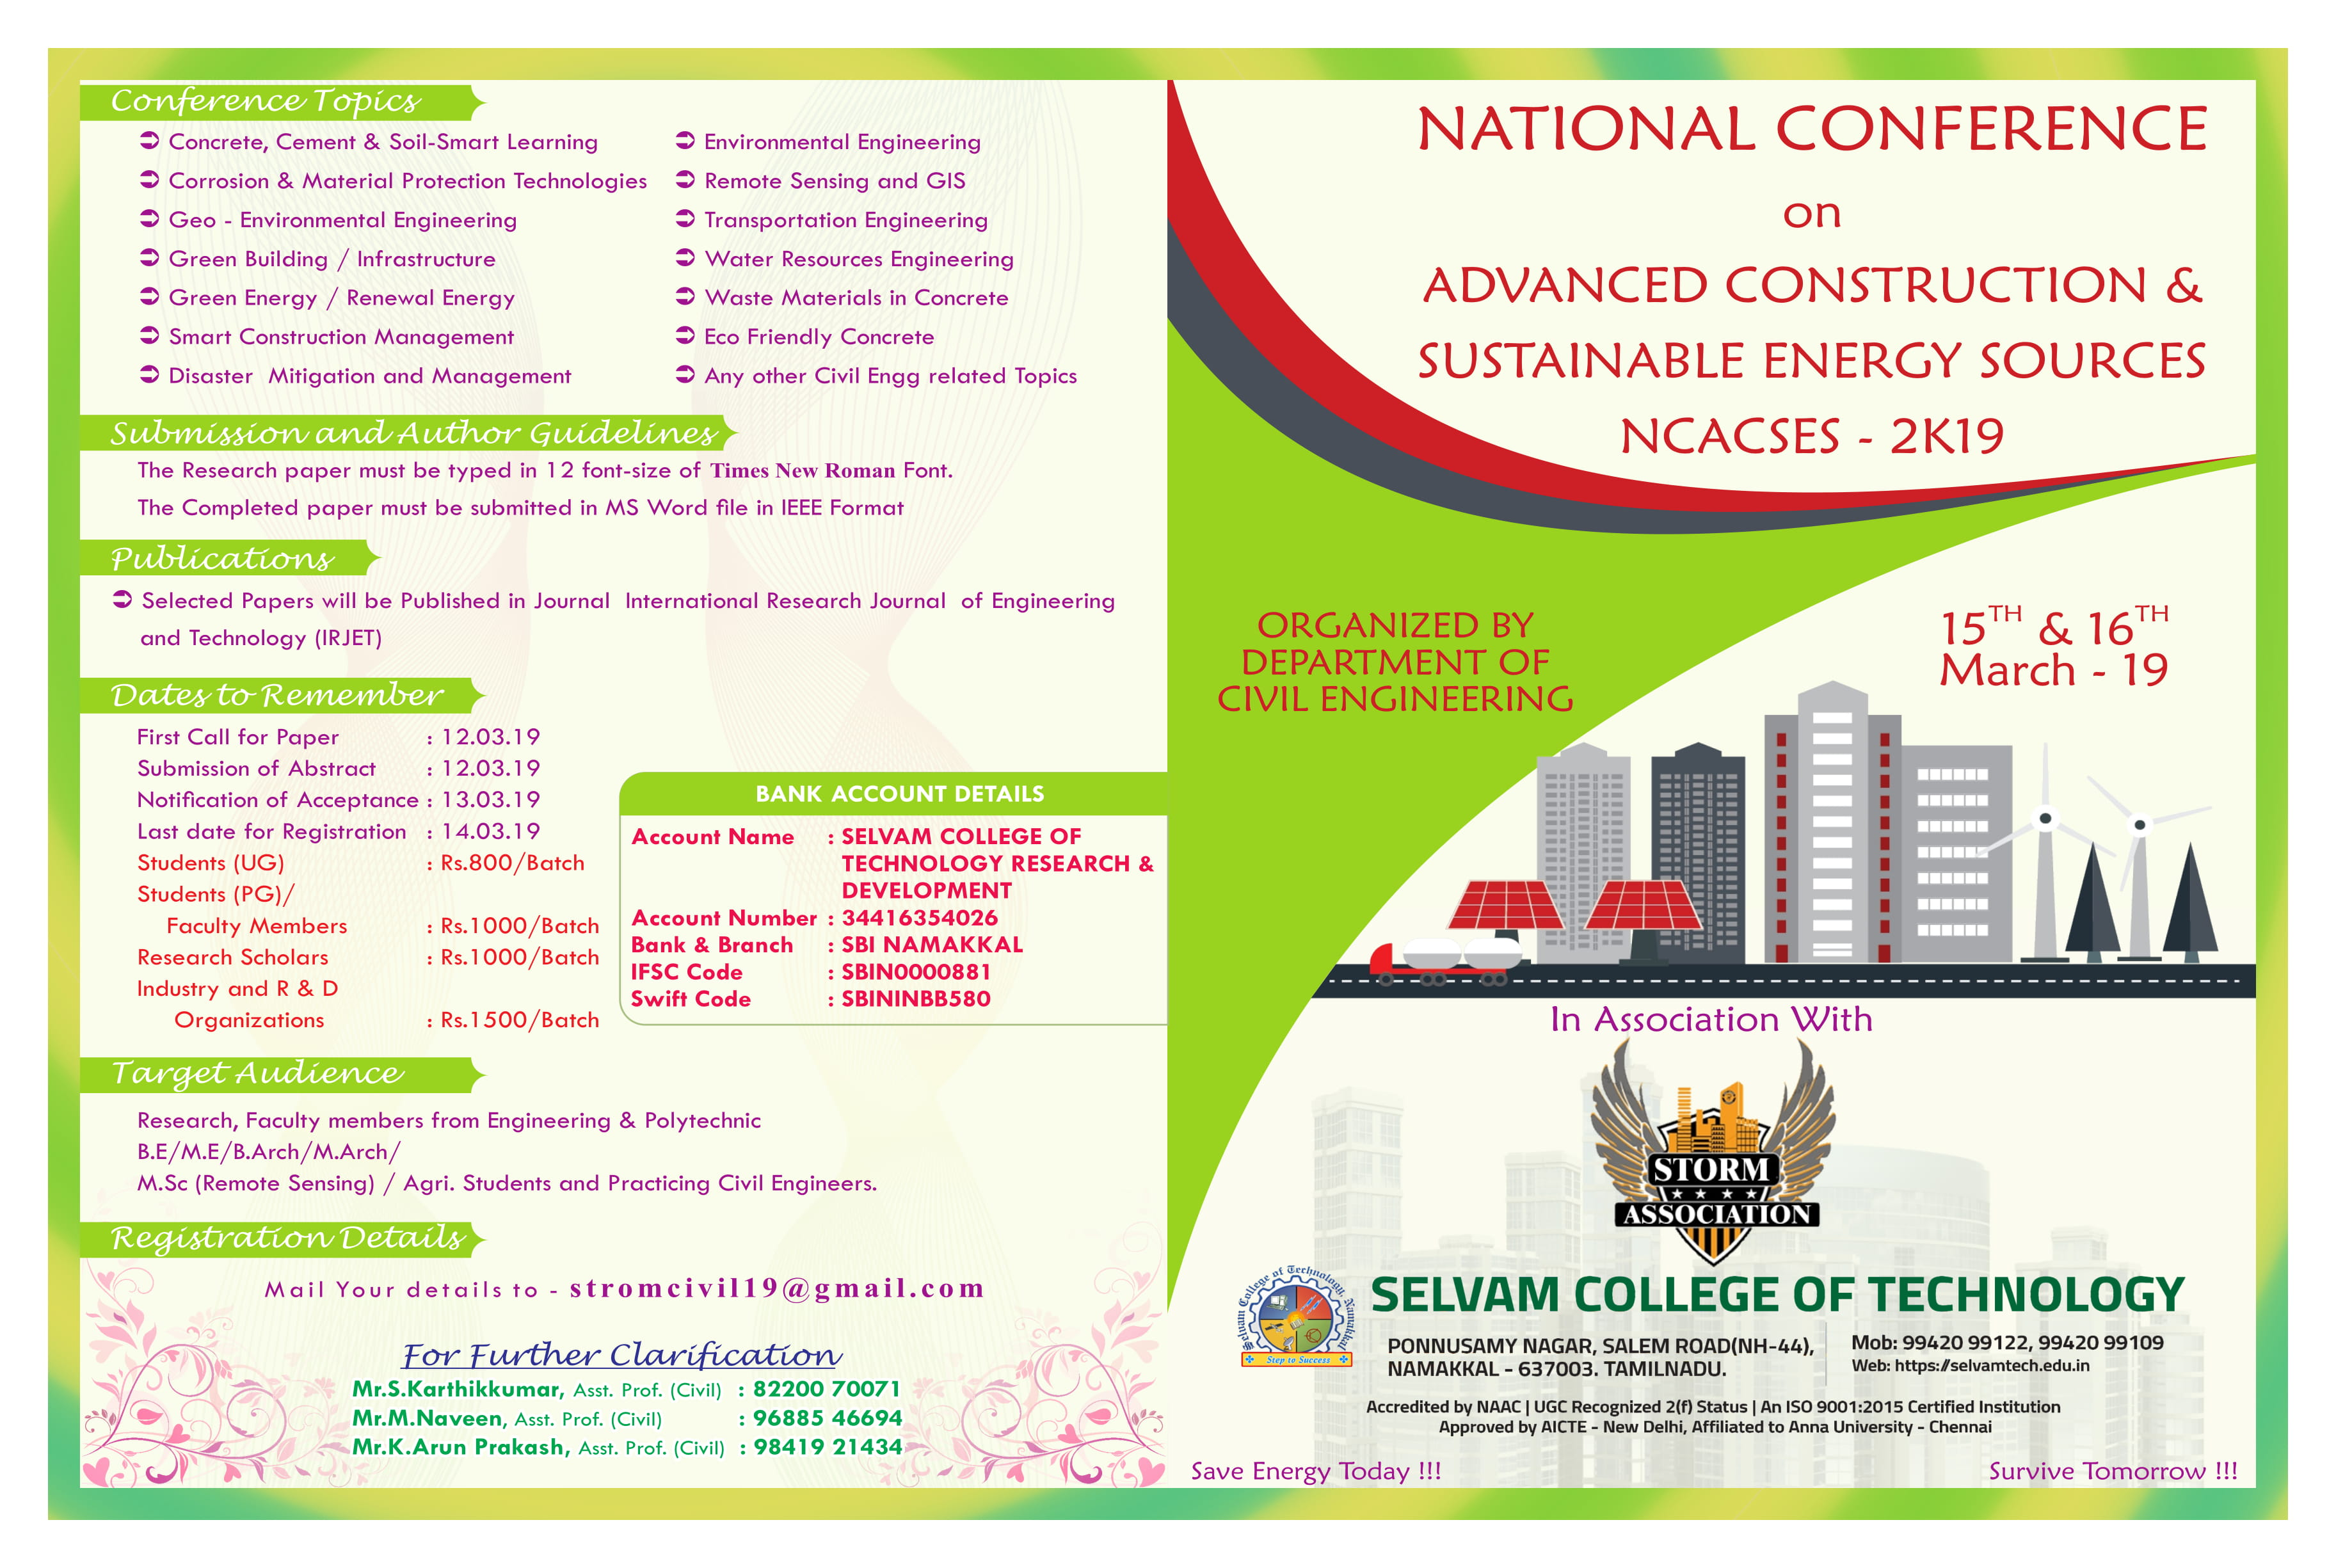 National Conference on Advanced Construction and Sustainable Energy